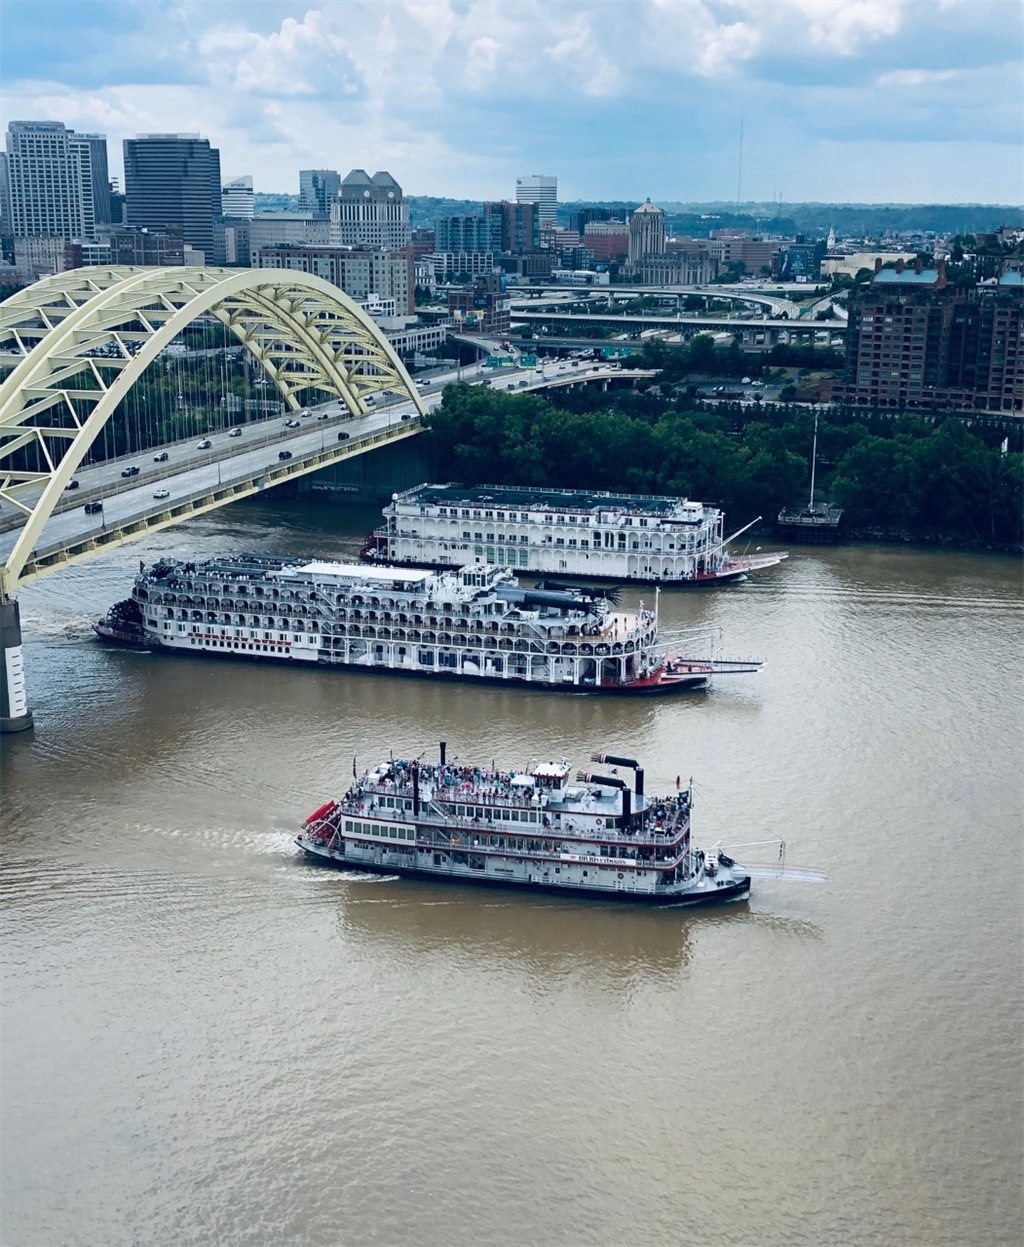 Unit Terrace View 2 for 400 Riverboat Row, 2100 Newport, KY 41071